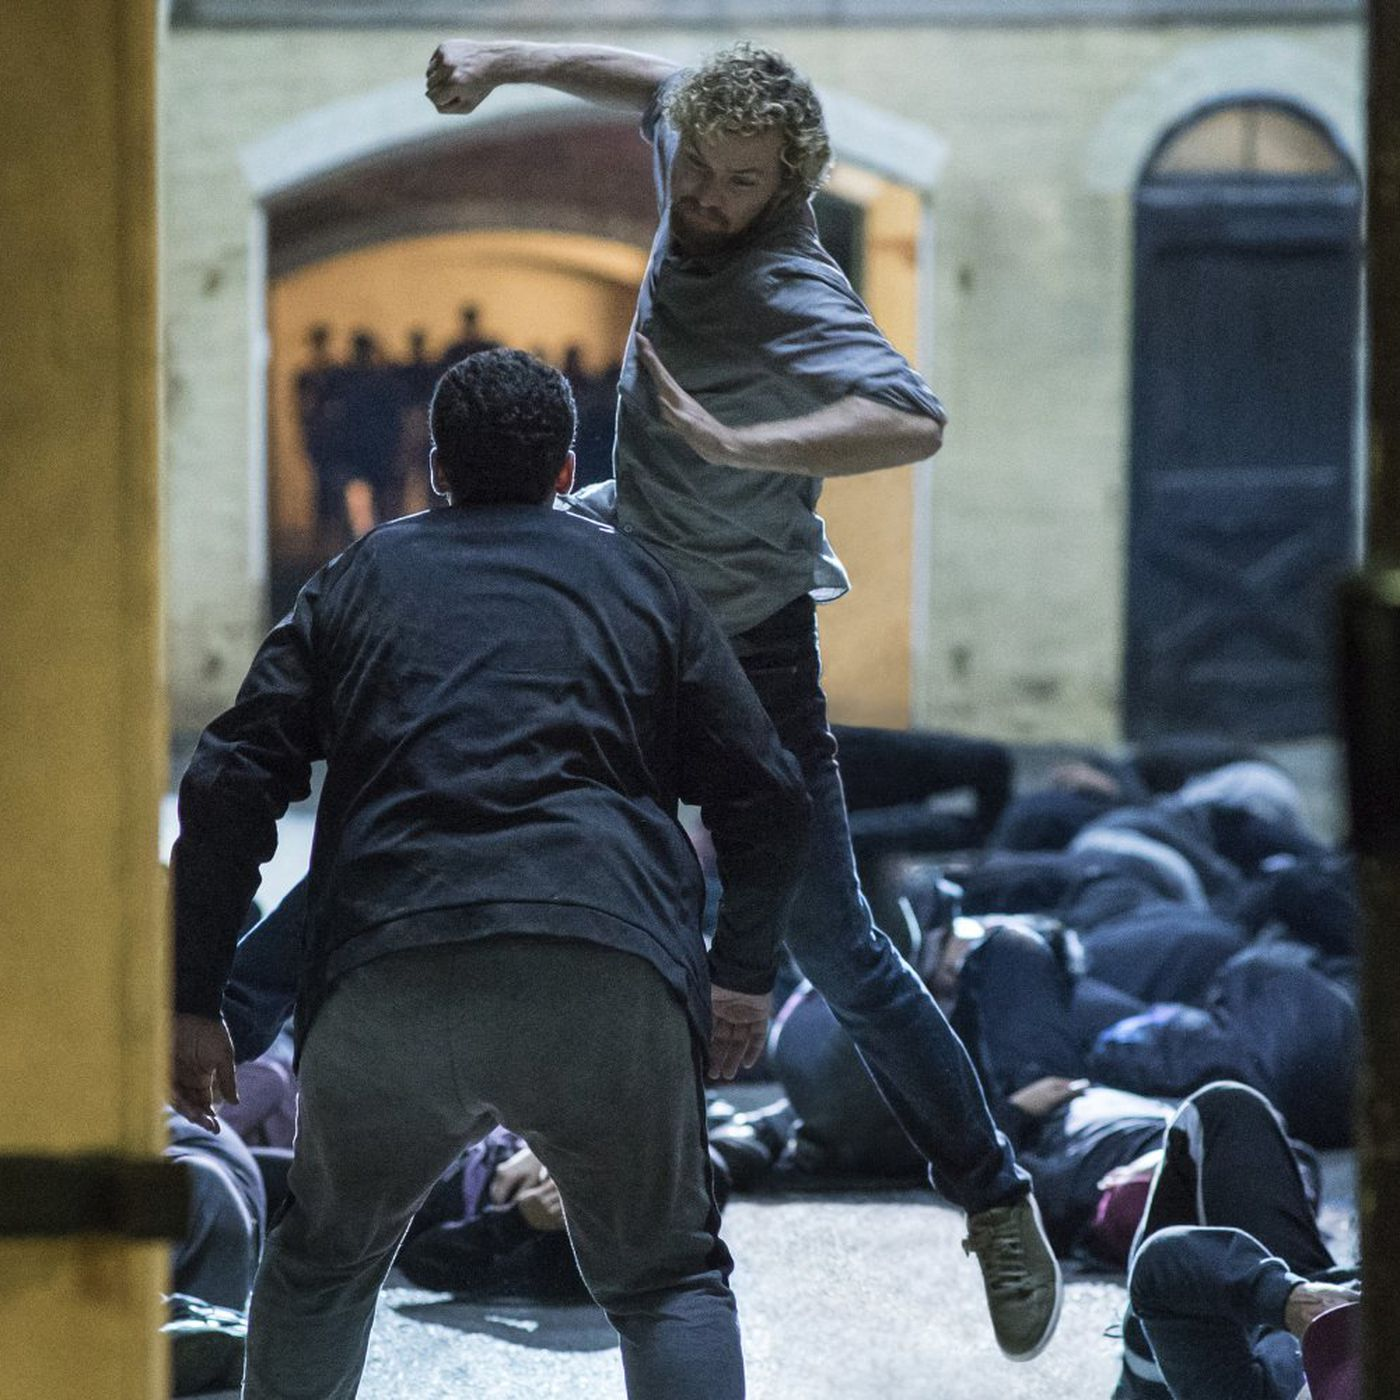 Netflix and Marvel's Iron Fist is an ill-conceived, poorly